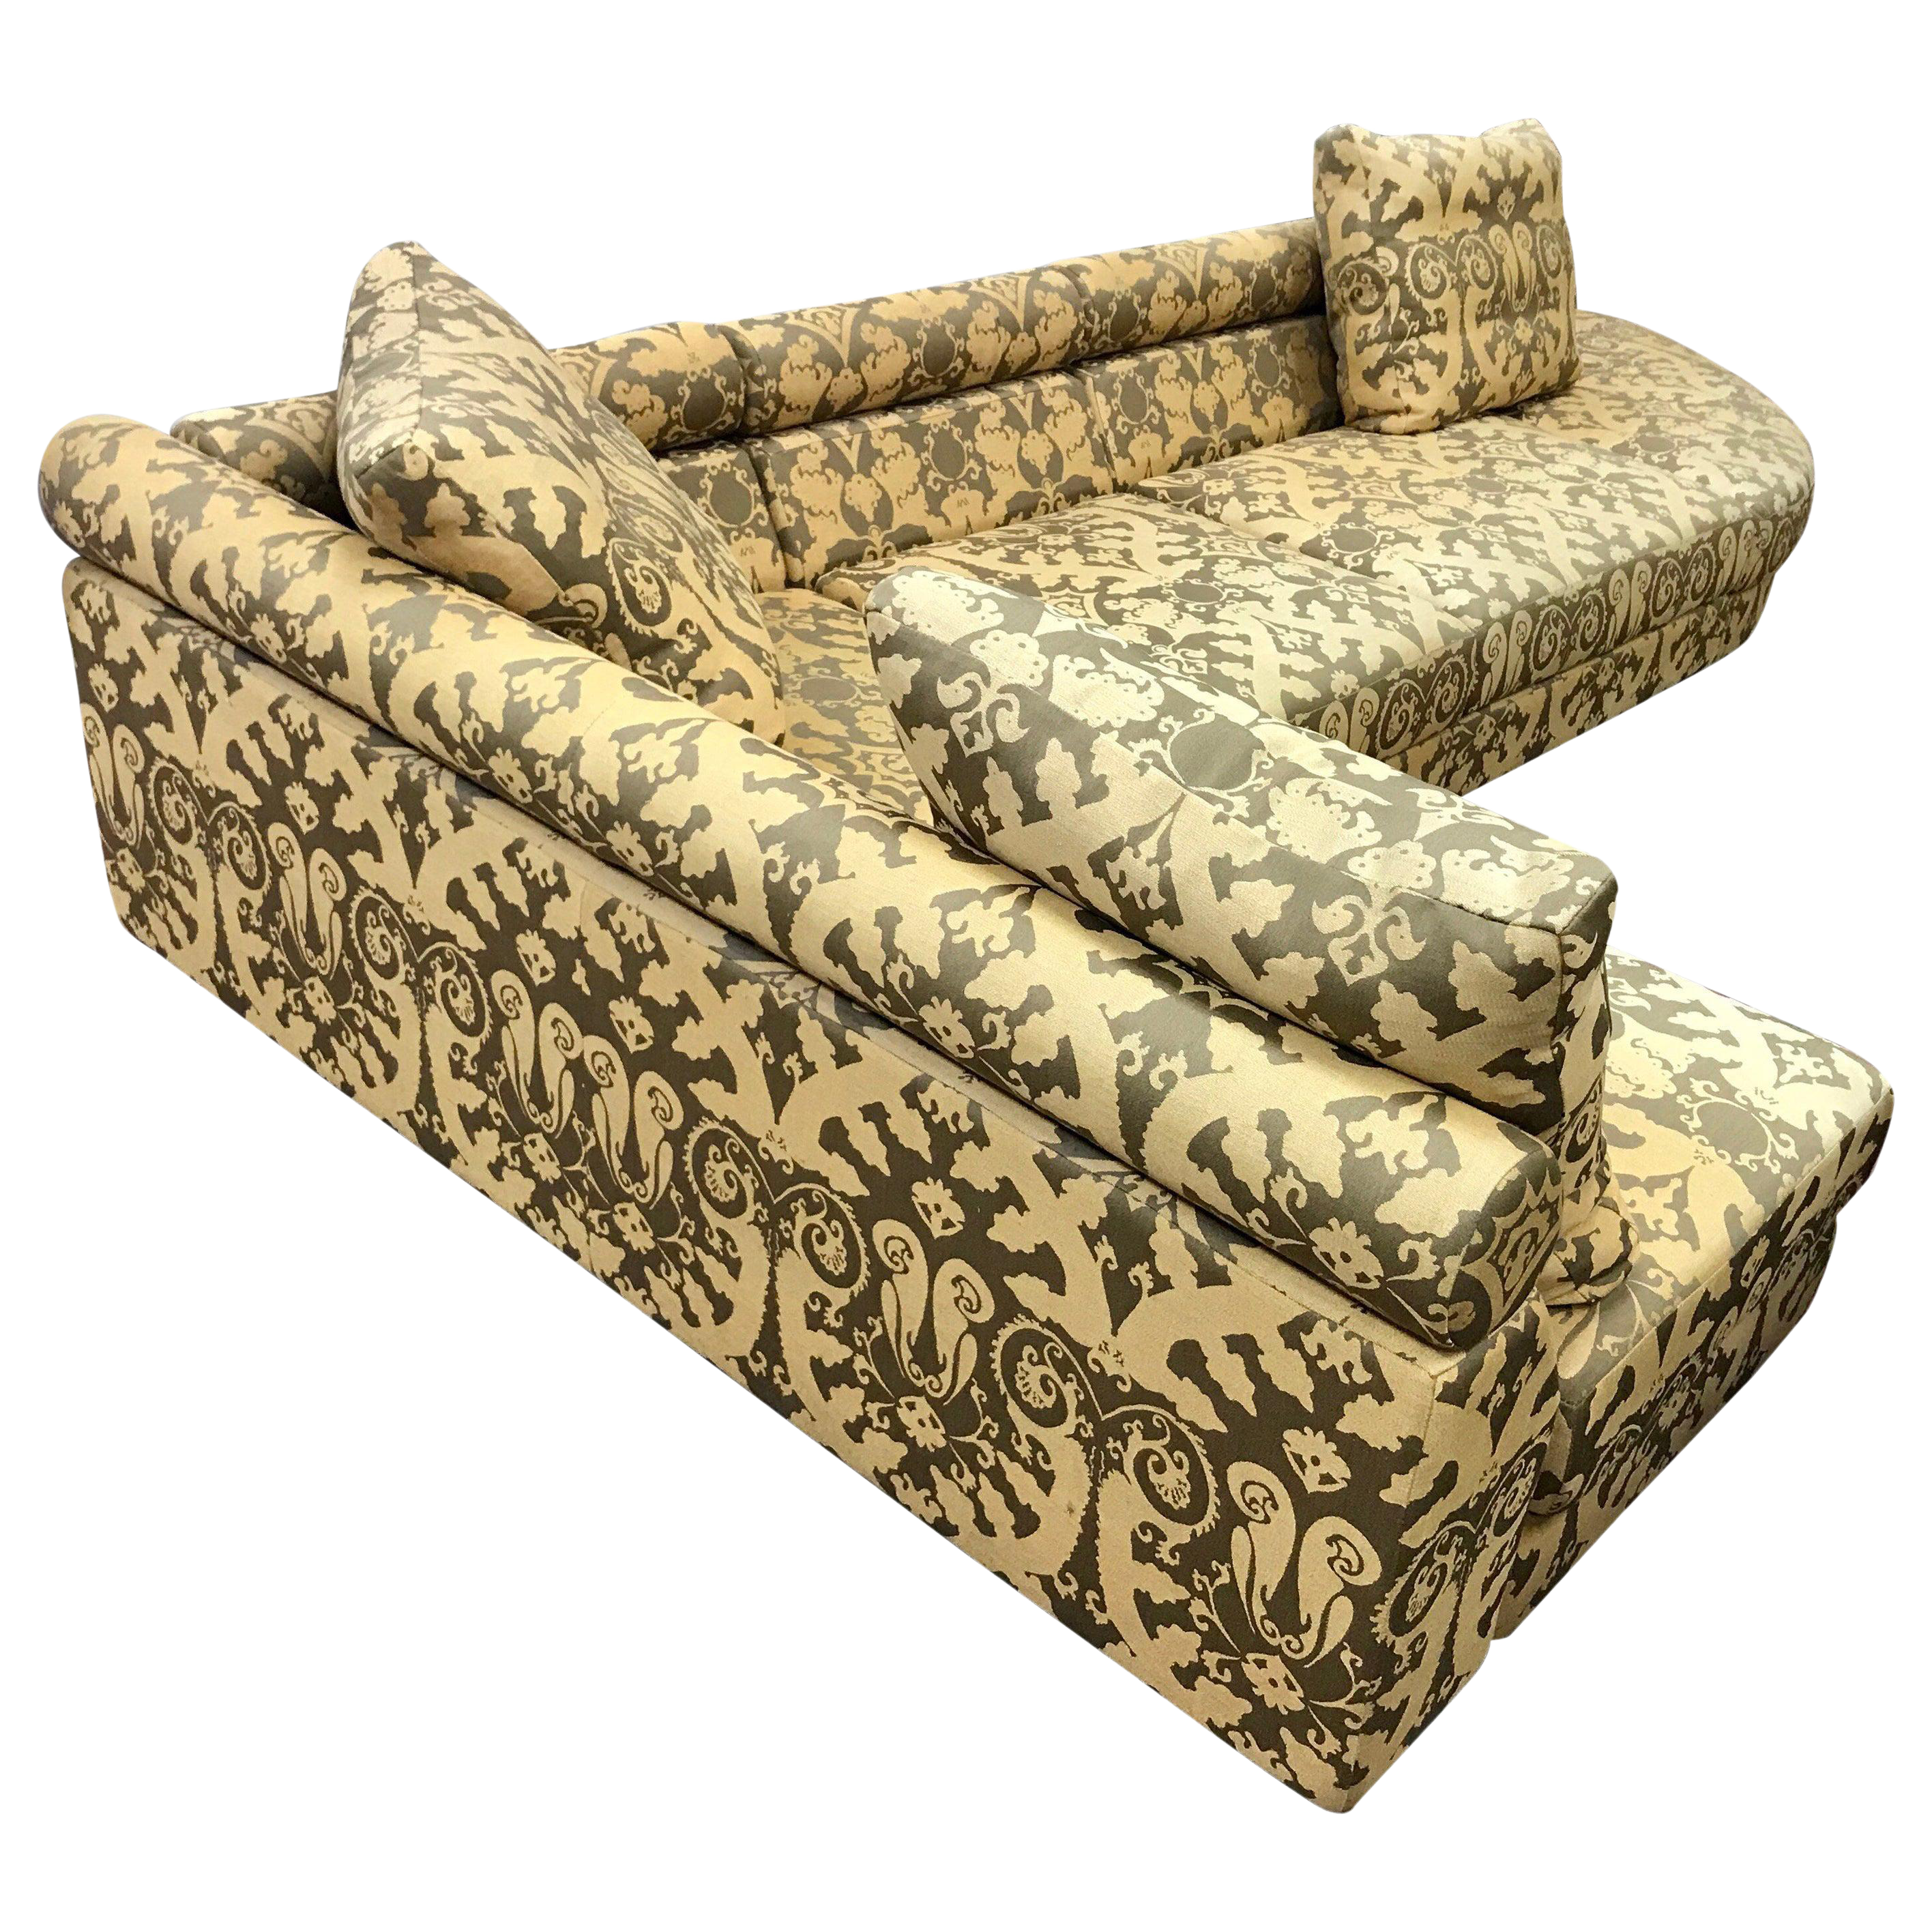 Remarkable Roche Bobois Architectural Modular Sofa Sectional 3 Piece Custom Kravet Fabric Ibusinesslaw Wood Chair Design Ideas Ibusinesslaworg